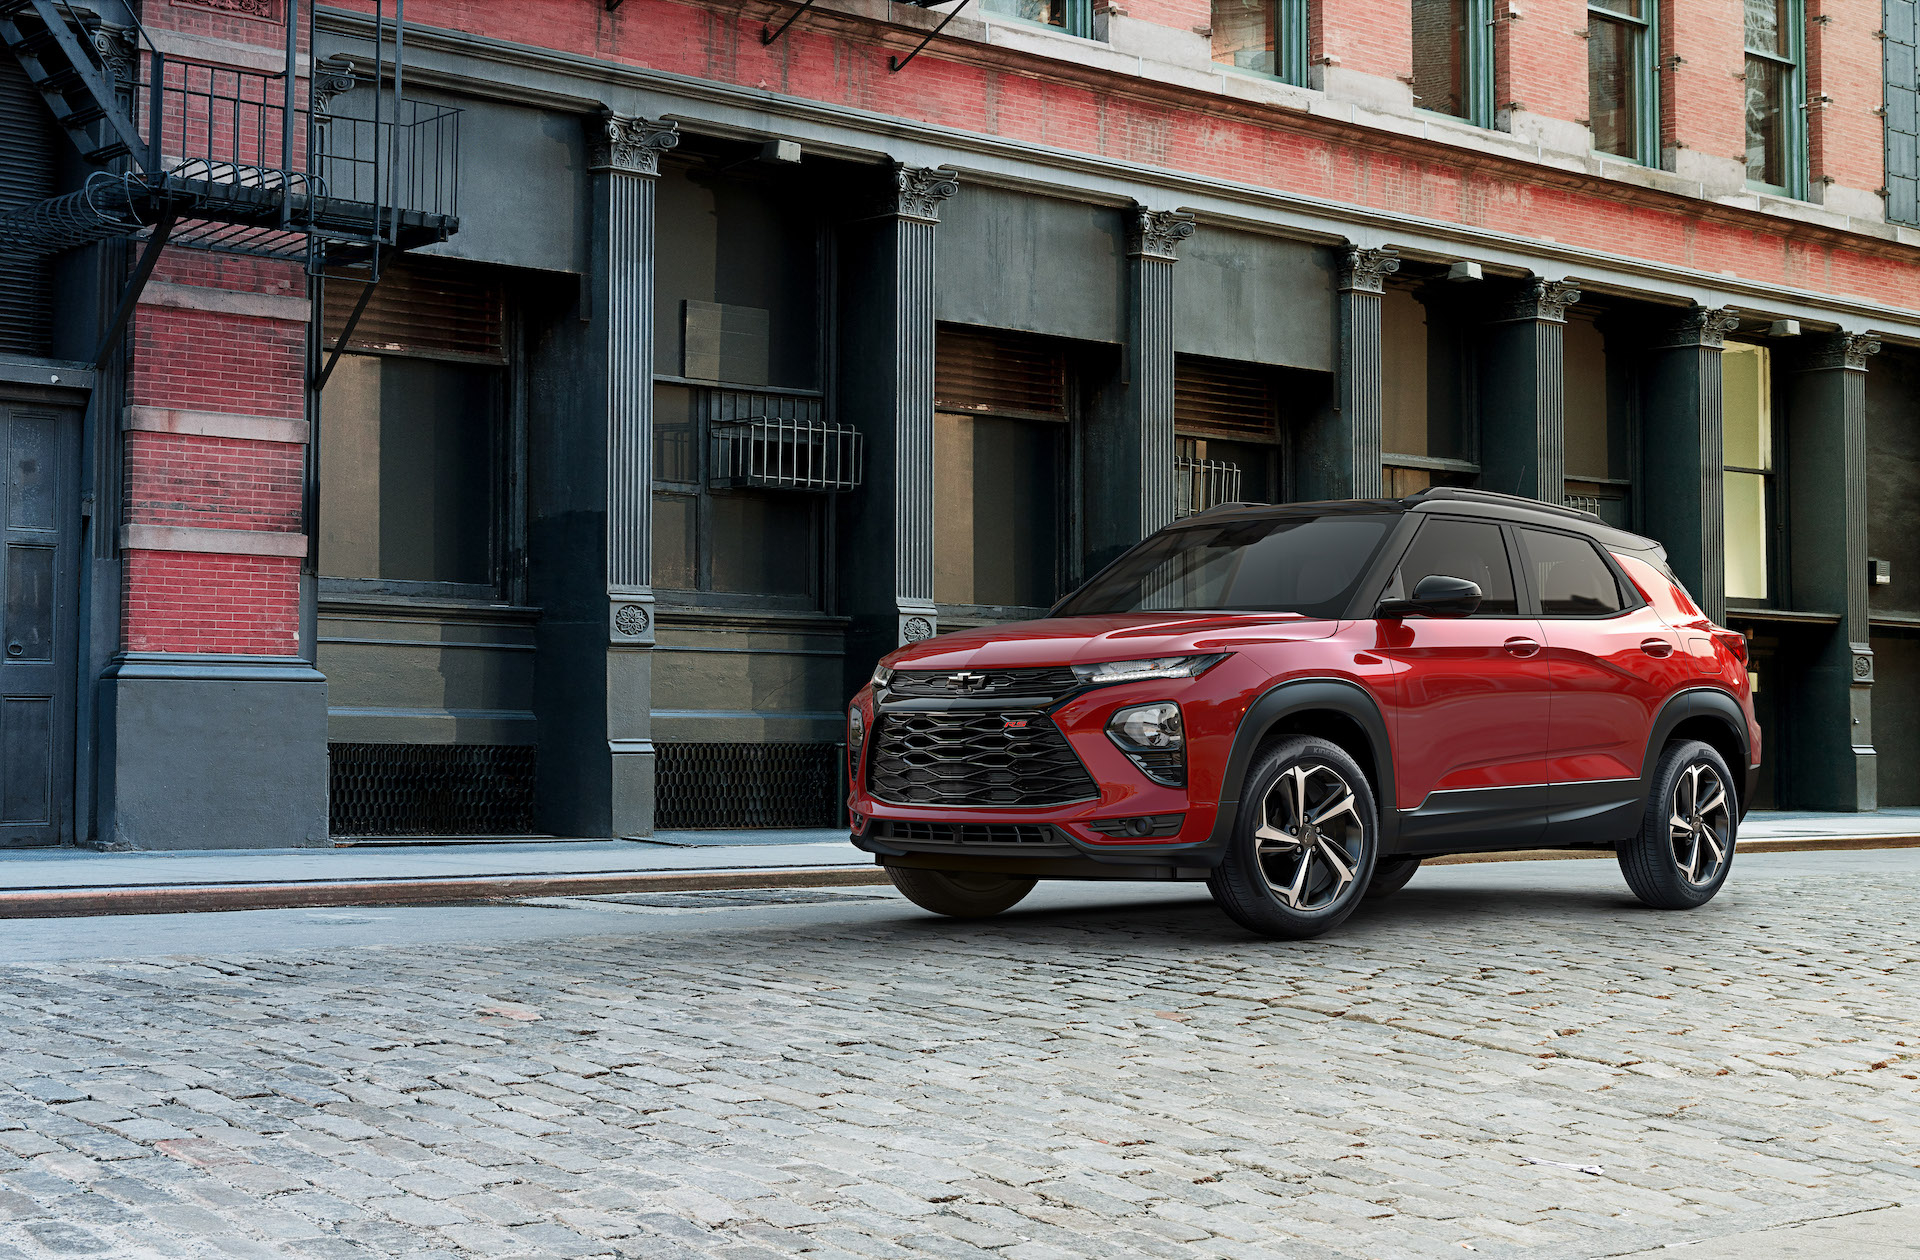 2021 Chevrolet Trailblazer (Chevy) Review, Ratings, Specs 2021 Chevy Camaro Oil Capacity, Options, Pictures